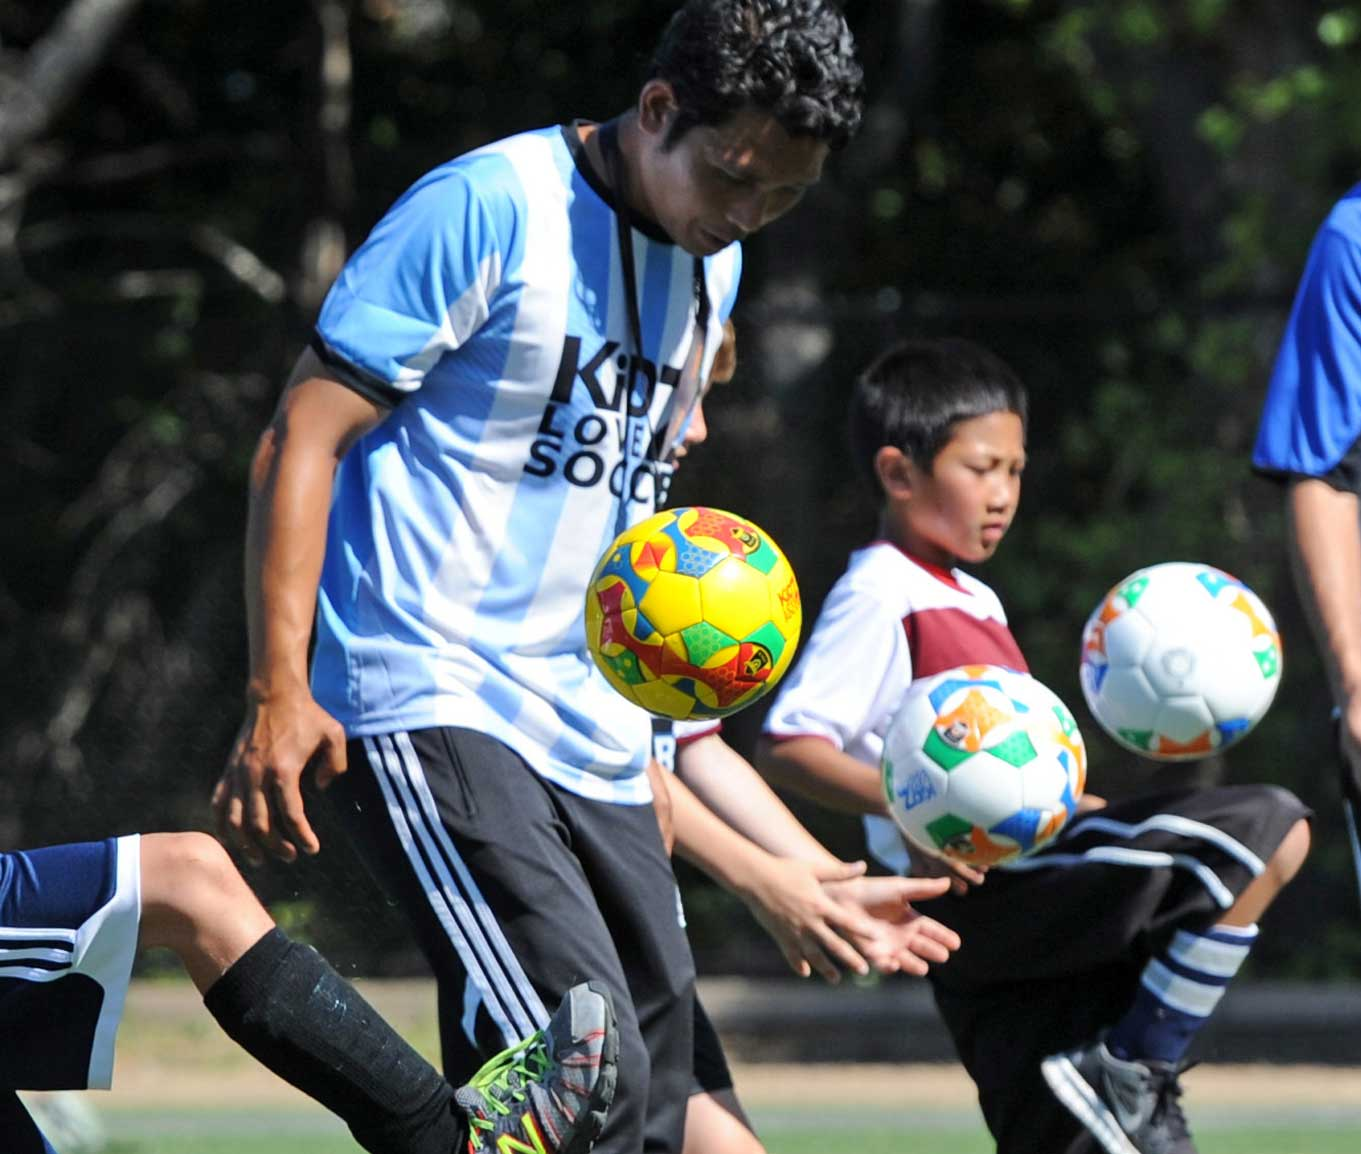 playing soccer image